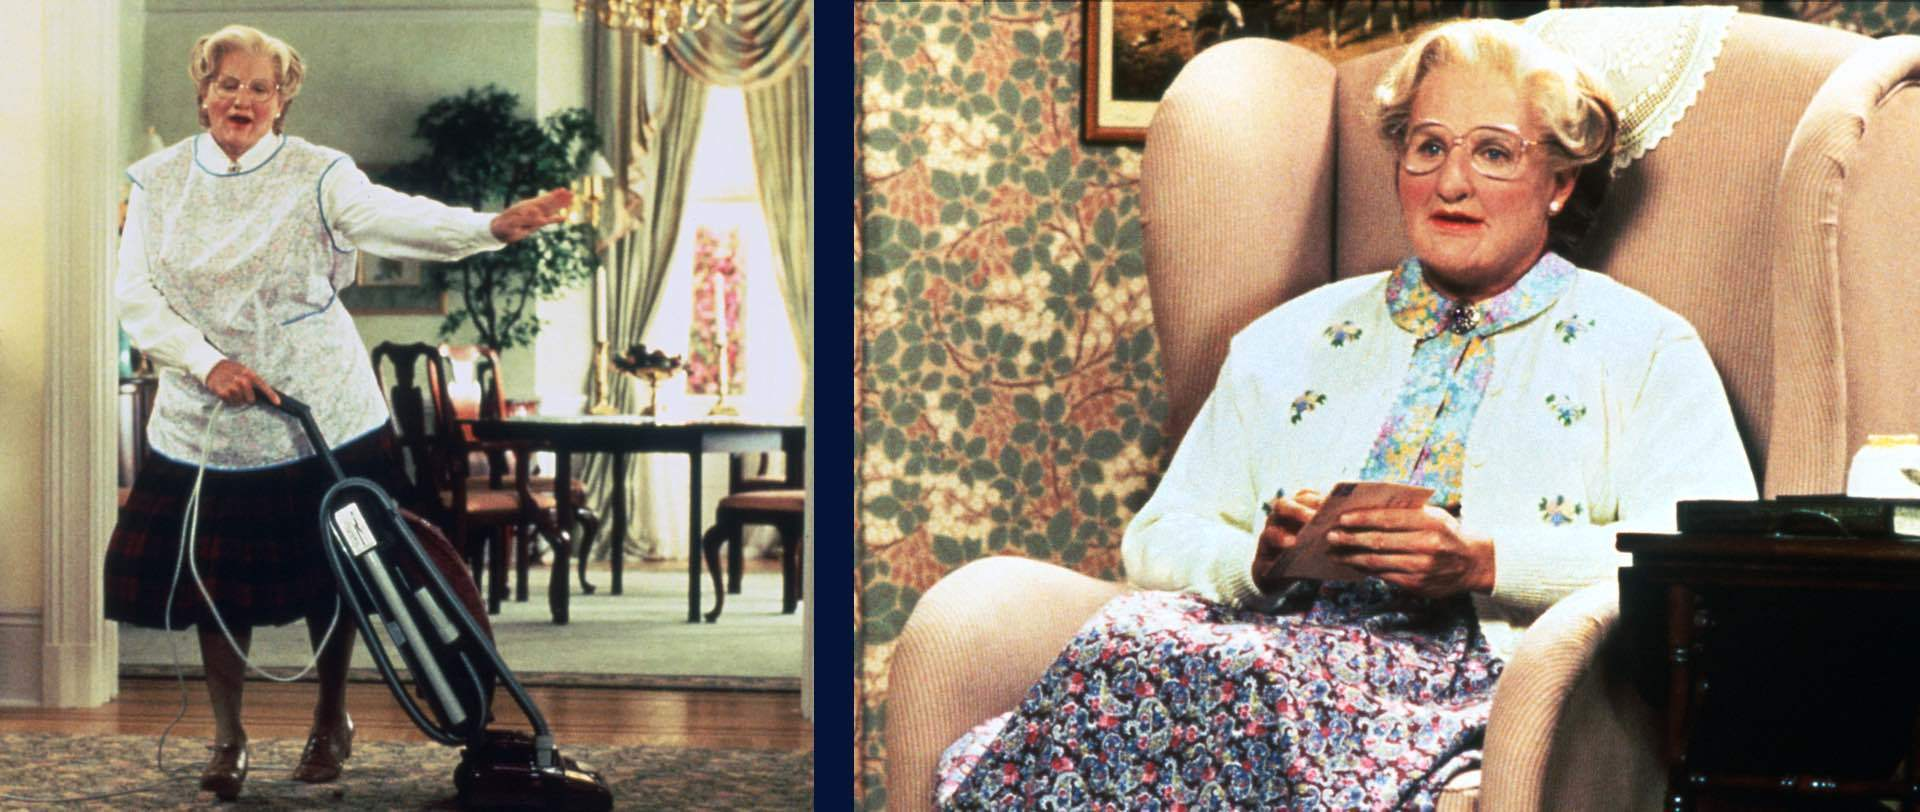 A still image from Mrs Doubtfire